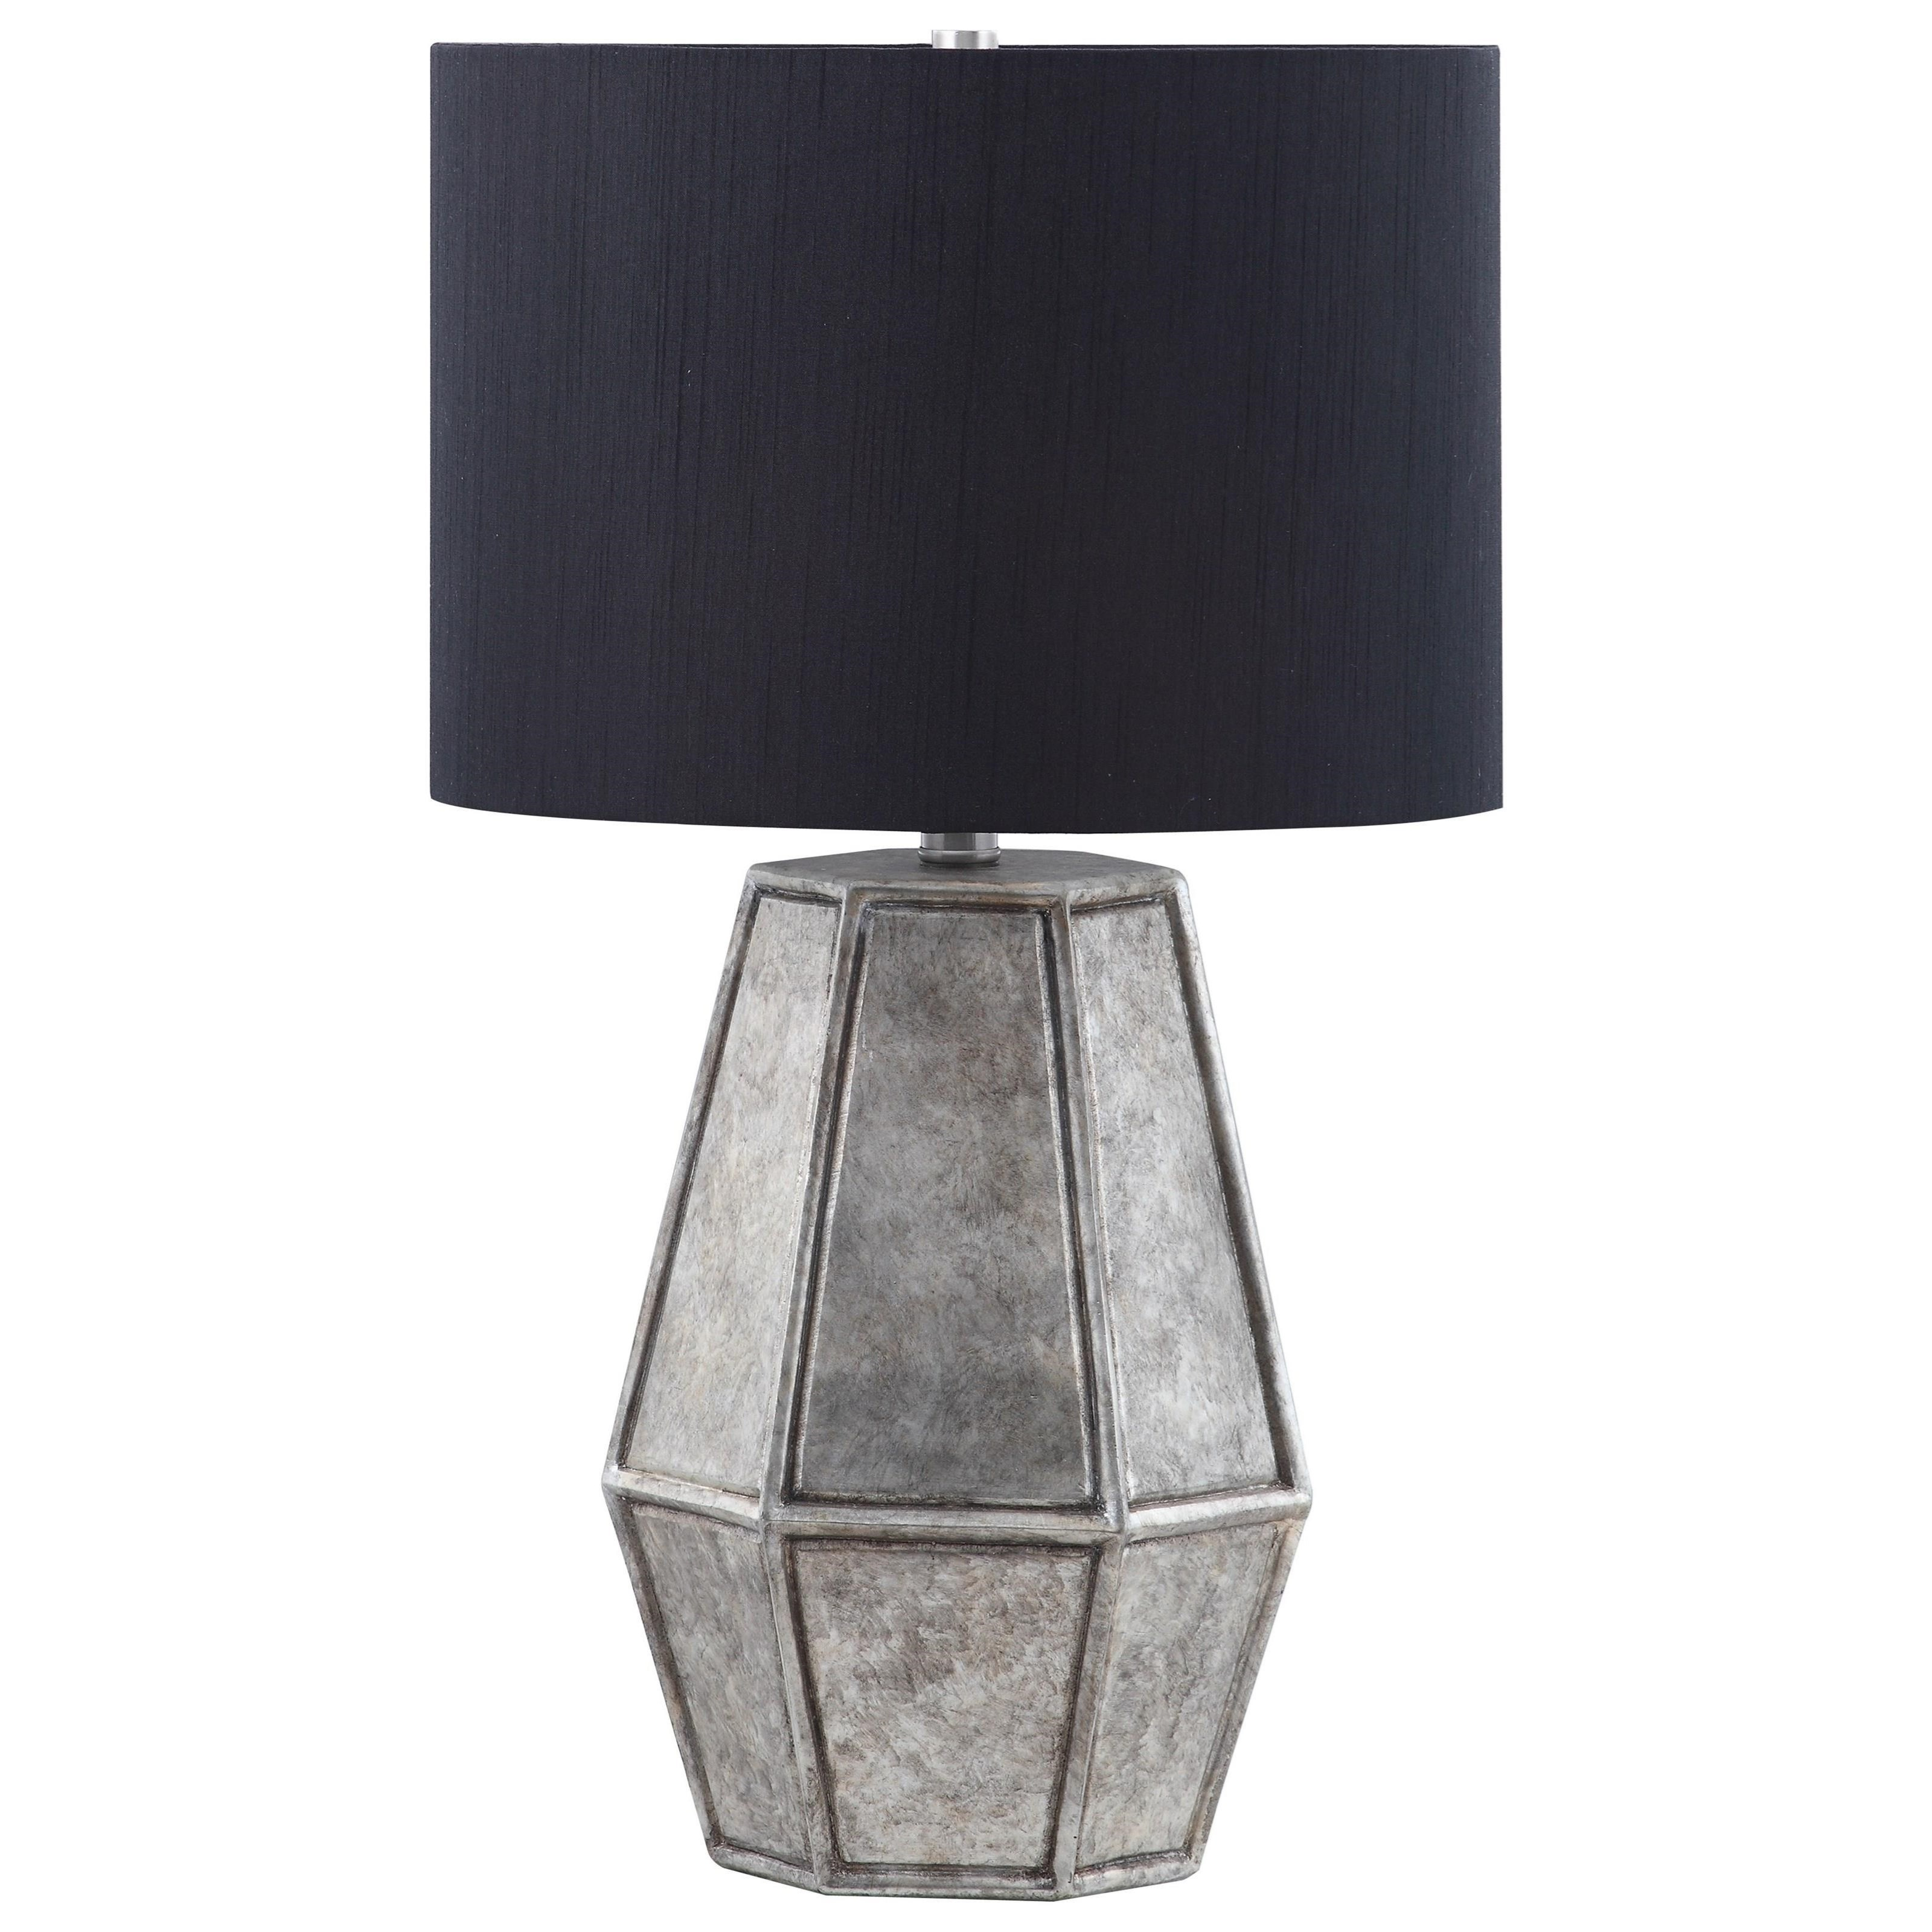 Donny Osmond Home Lamps Modern Table Lamp With Metal Base   Coaster Fine  Furniture